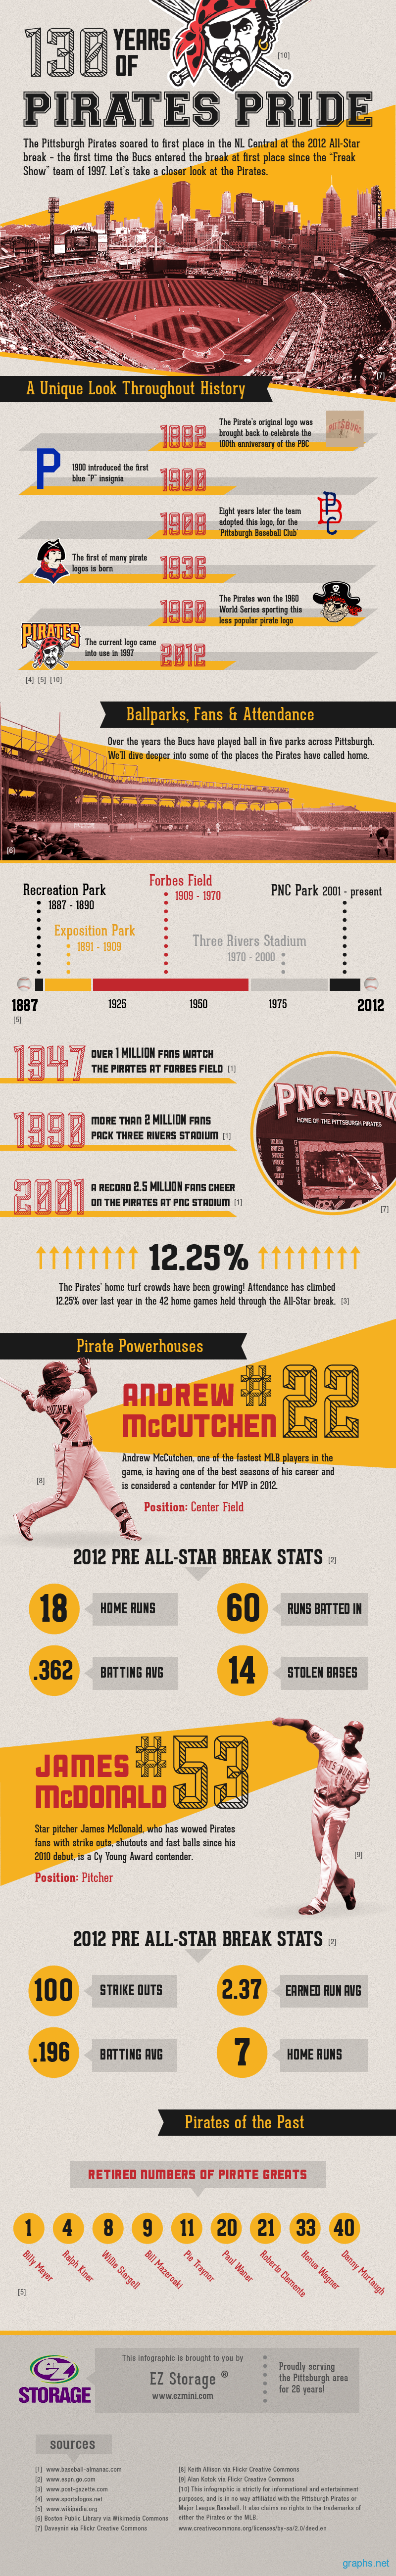 History of Pirates Pride